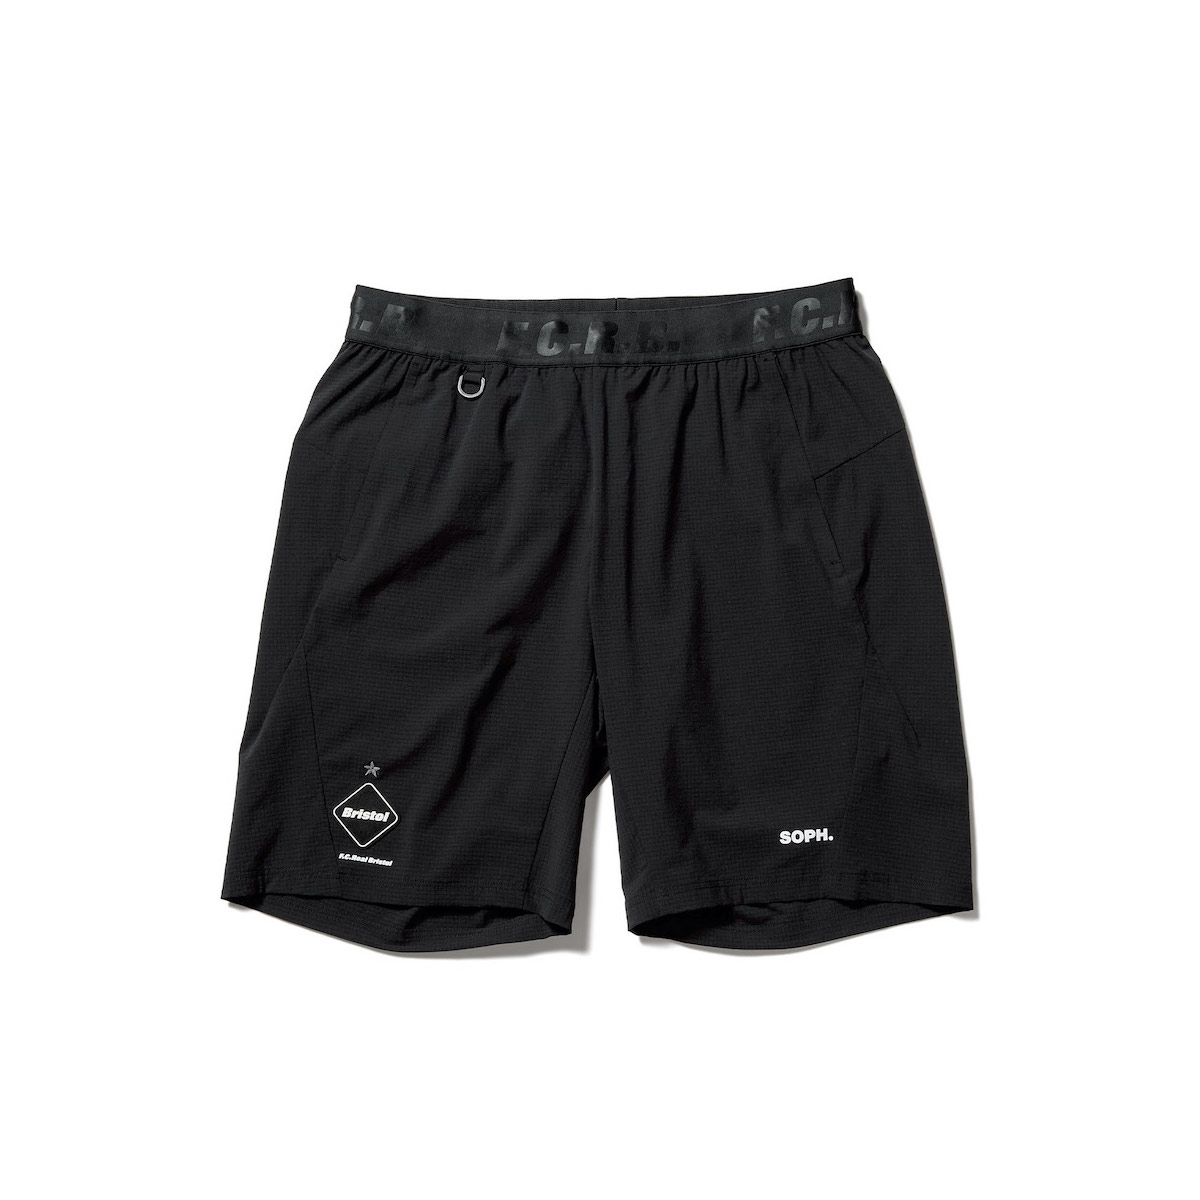 F.C.Real Bristol / STRETCH LIGHT WEIGHT EASY SHORTS (Black)正面